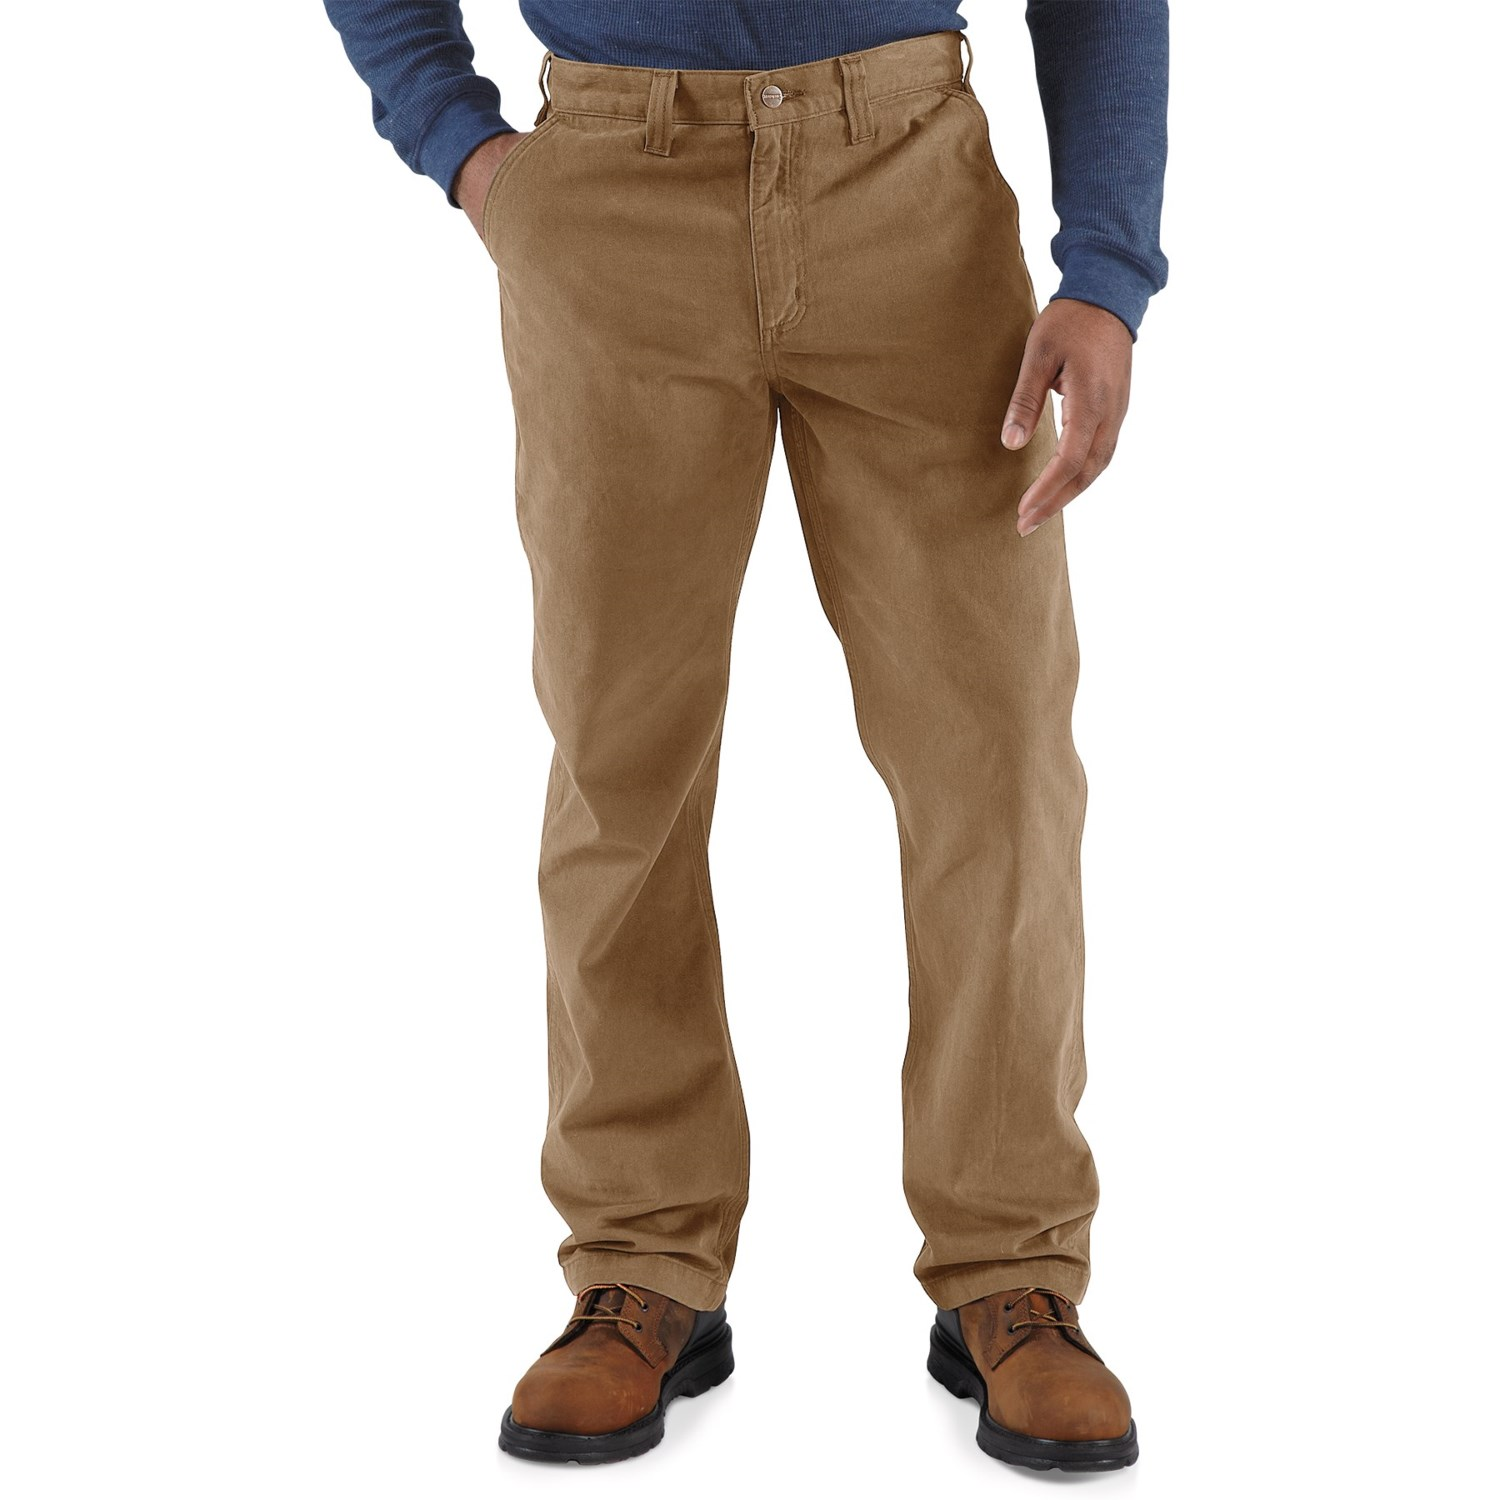 Carhartt Relaxed Fit Khaki Pants (For Men)